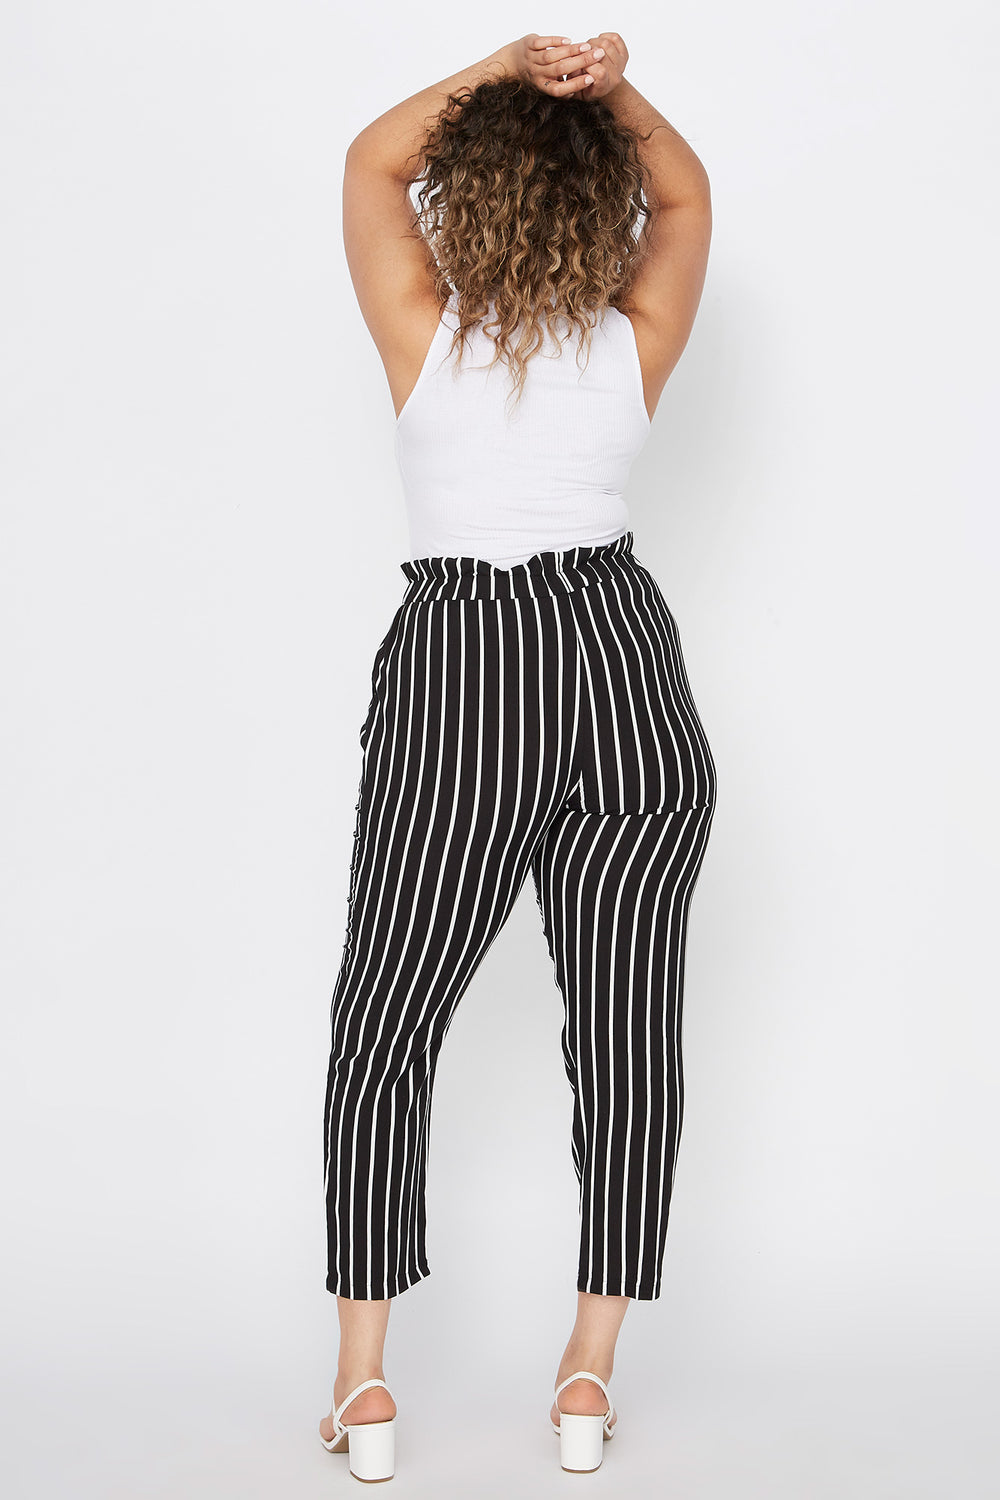 Plus Size Striped Paperbag Self Tie Cropped Pant Black